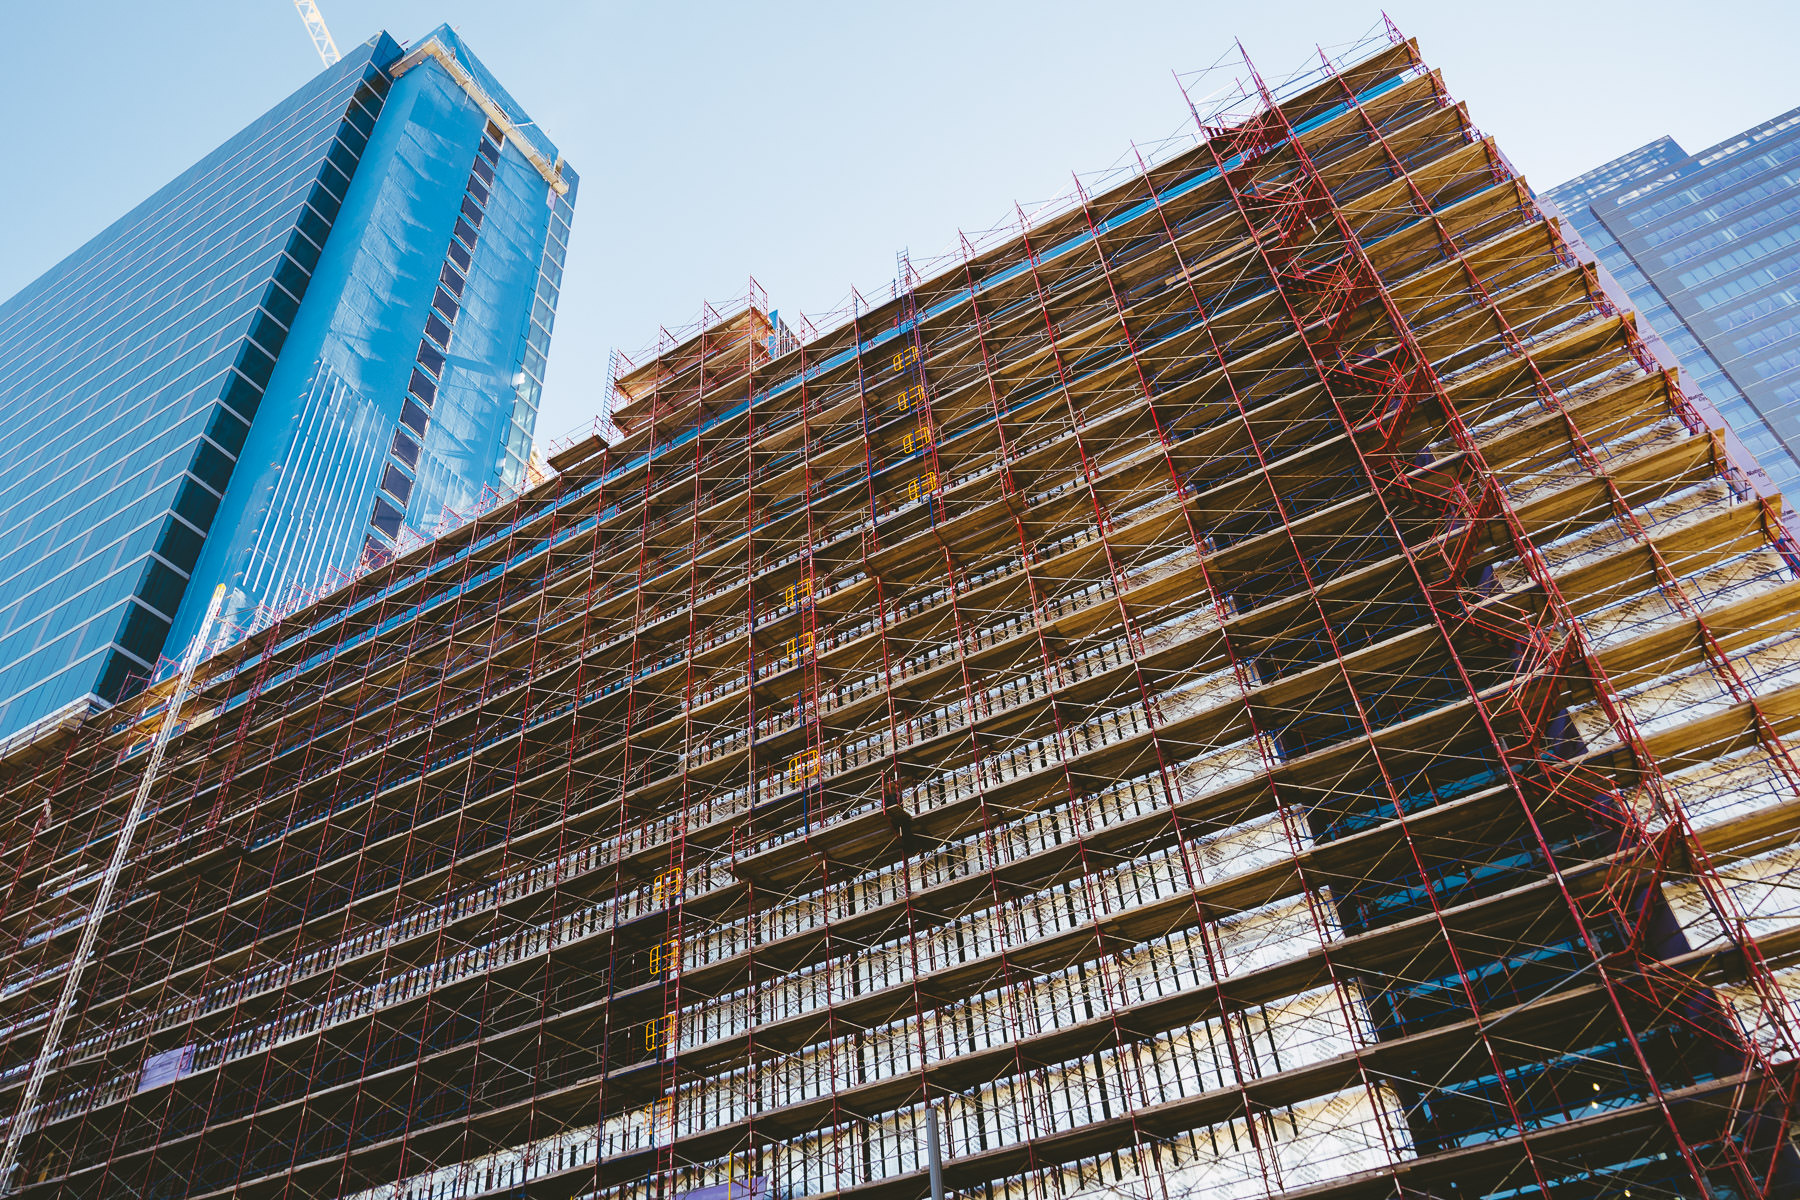 A massive scaffold surrounds a construction site in Downtown Houston, Texas.